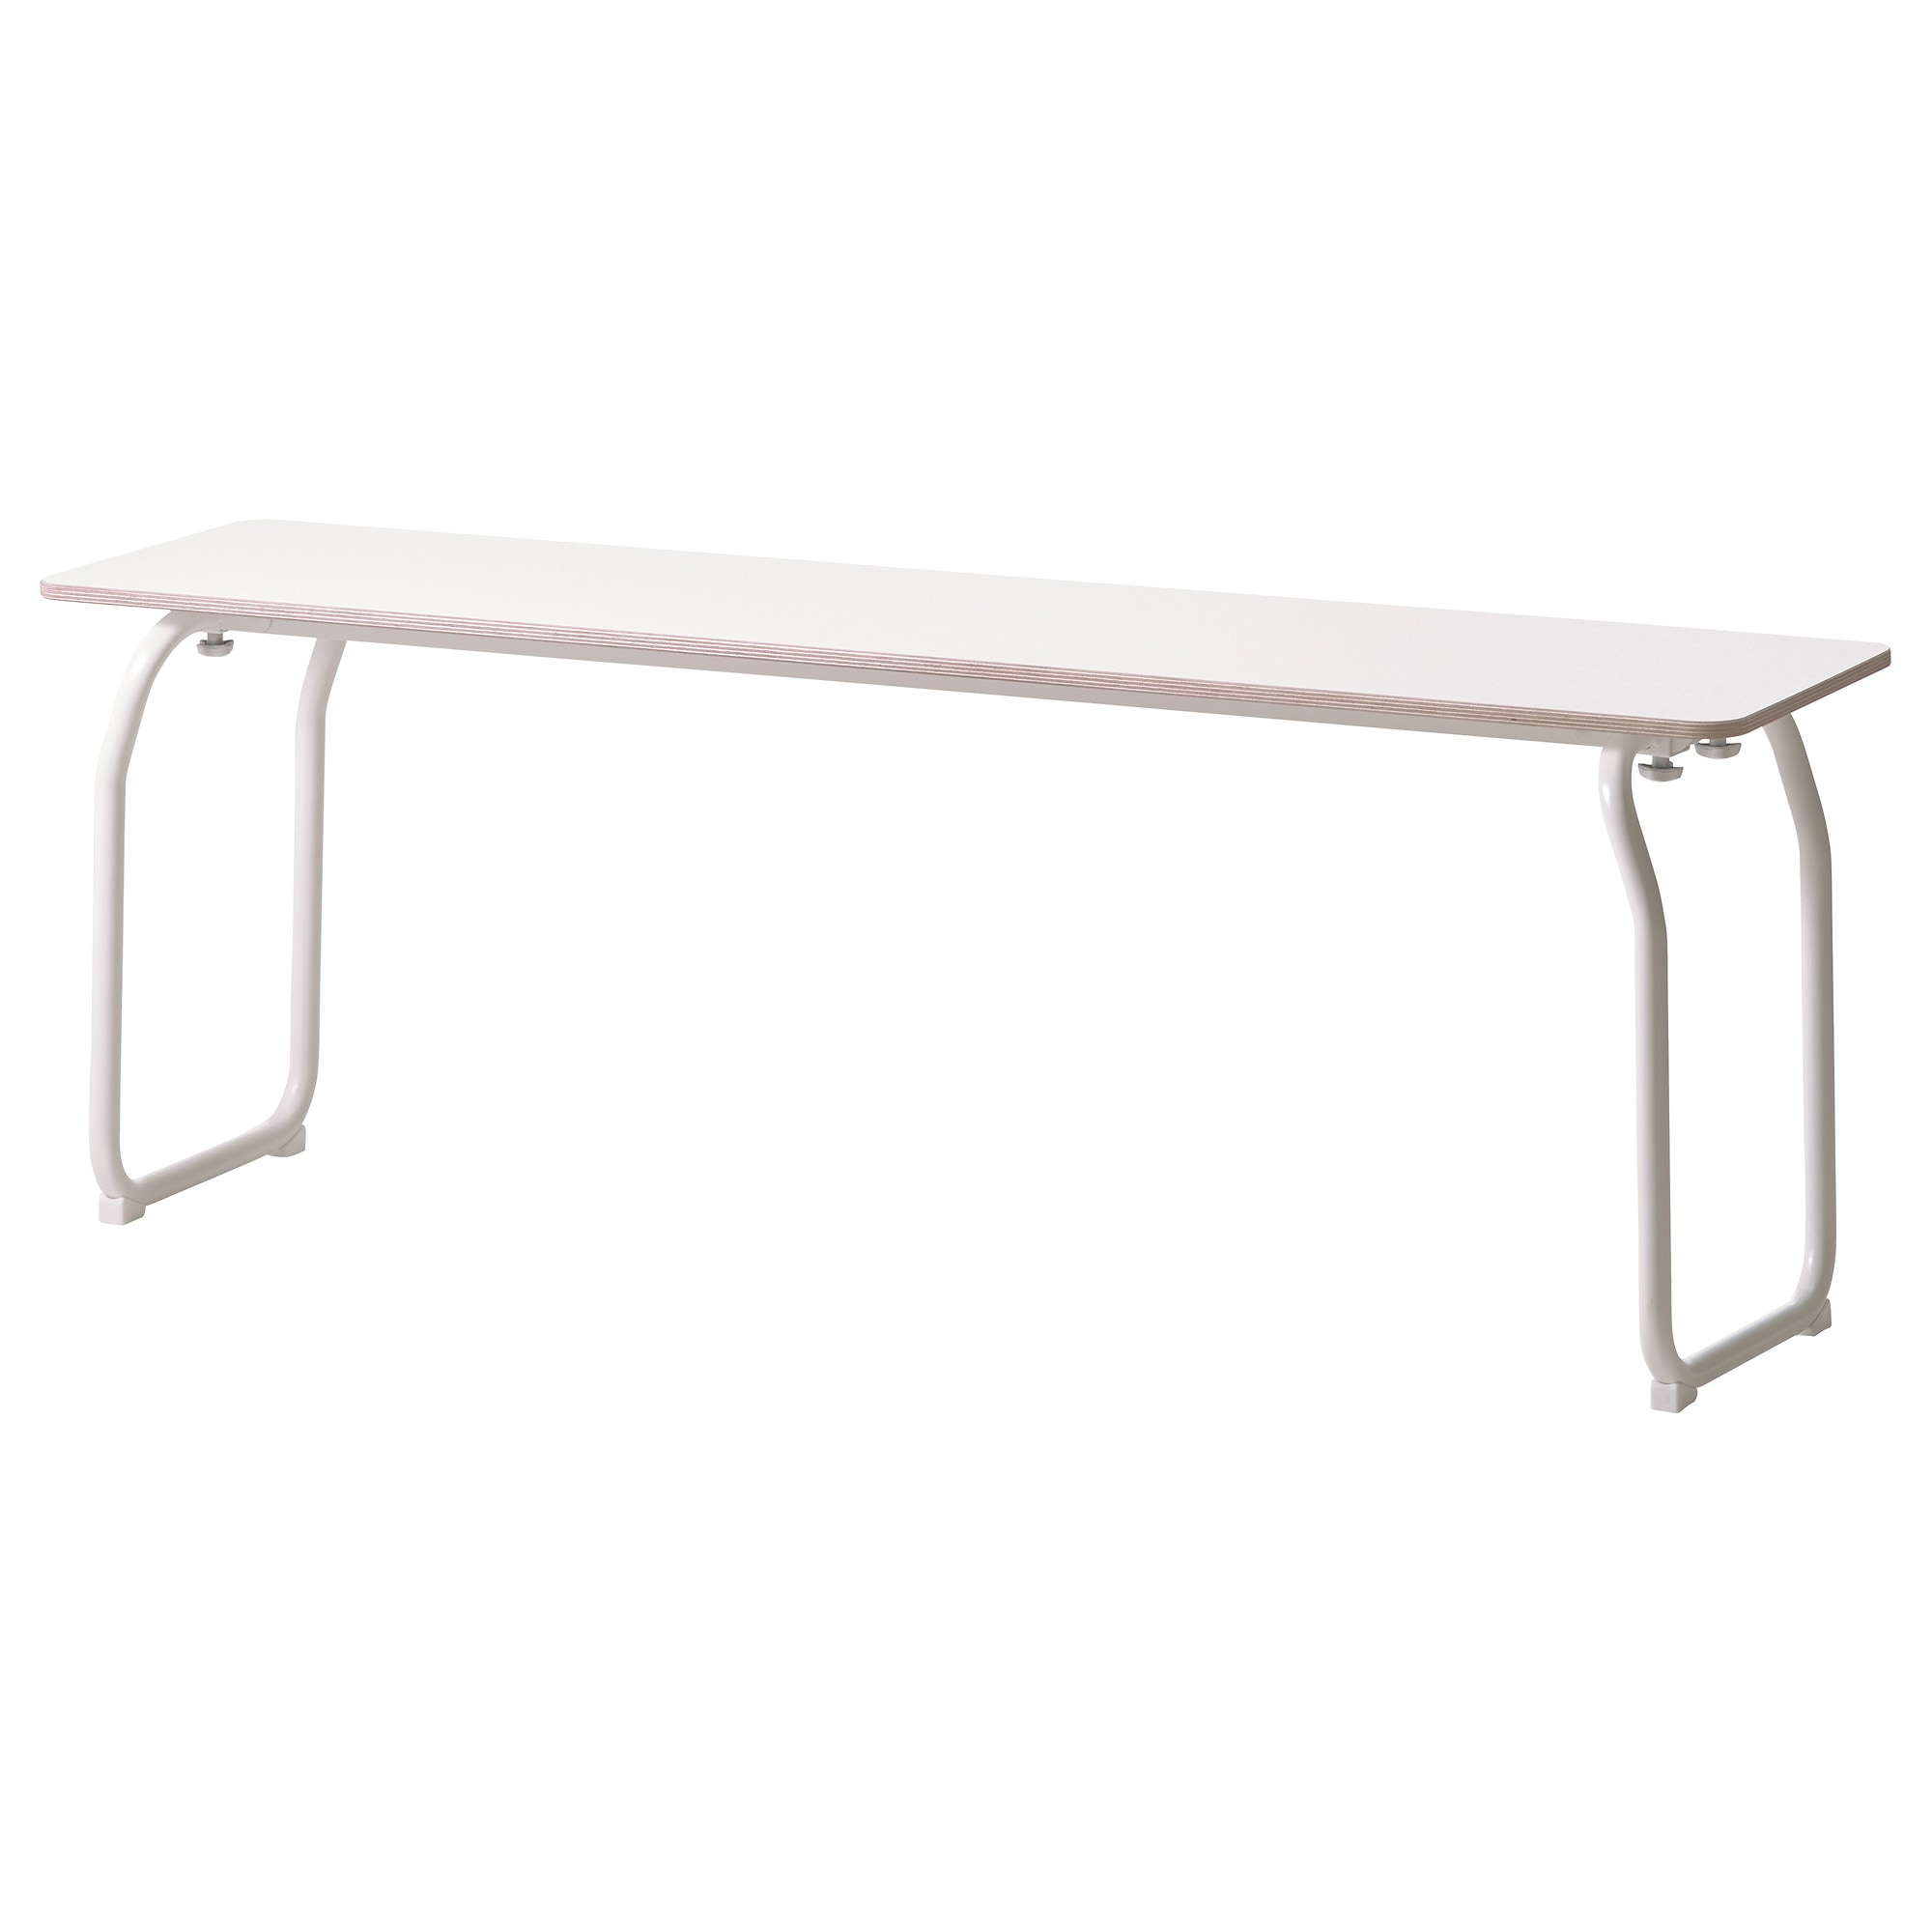 Bedroom bench dimensions - Ikea Ps 2014 Bench In Outdoor White Foldable Length 51 1